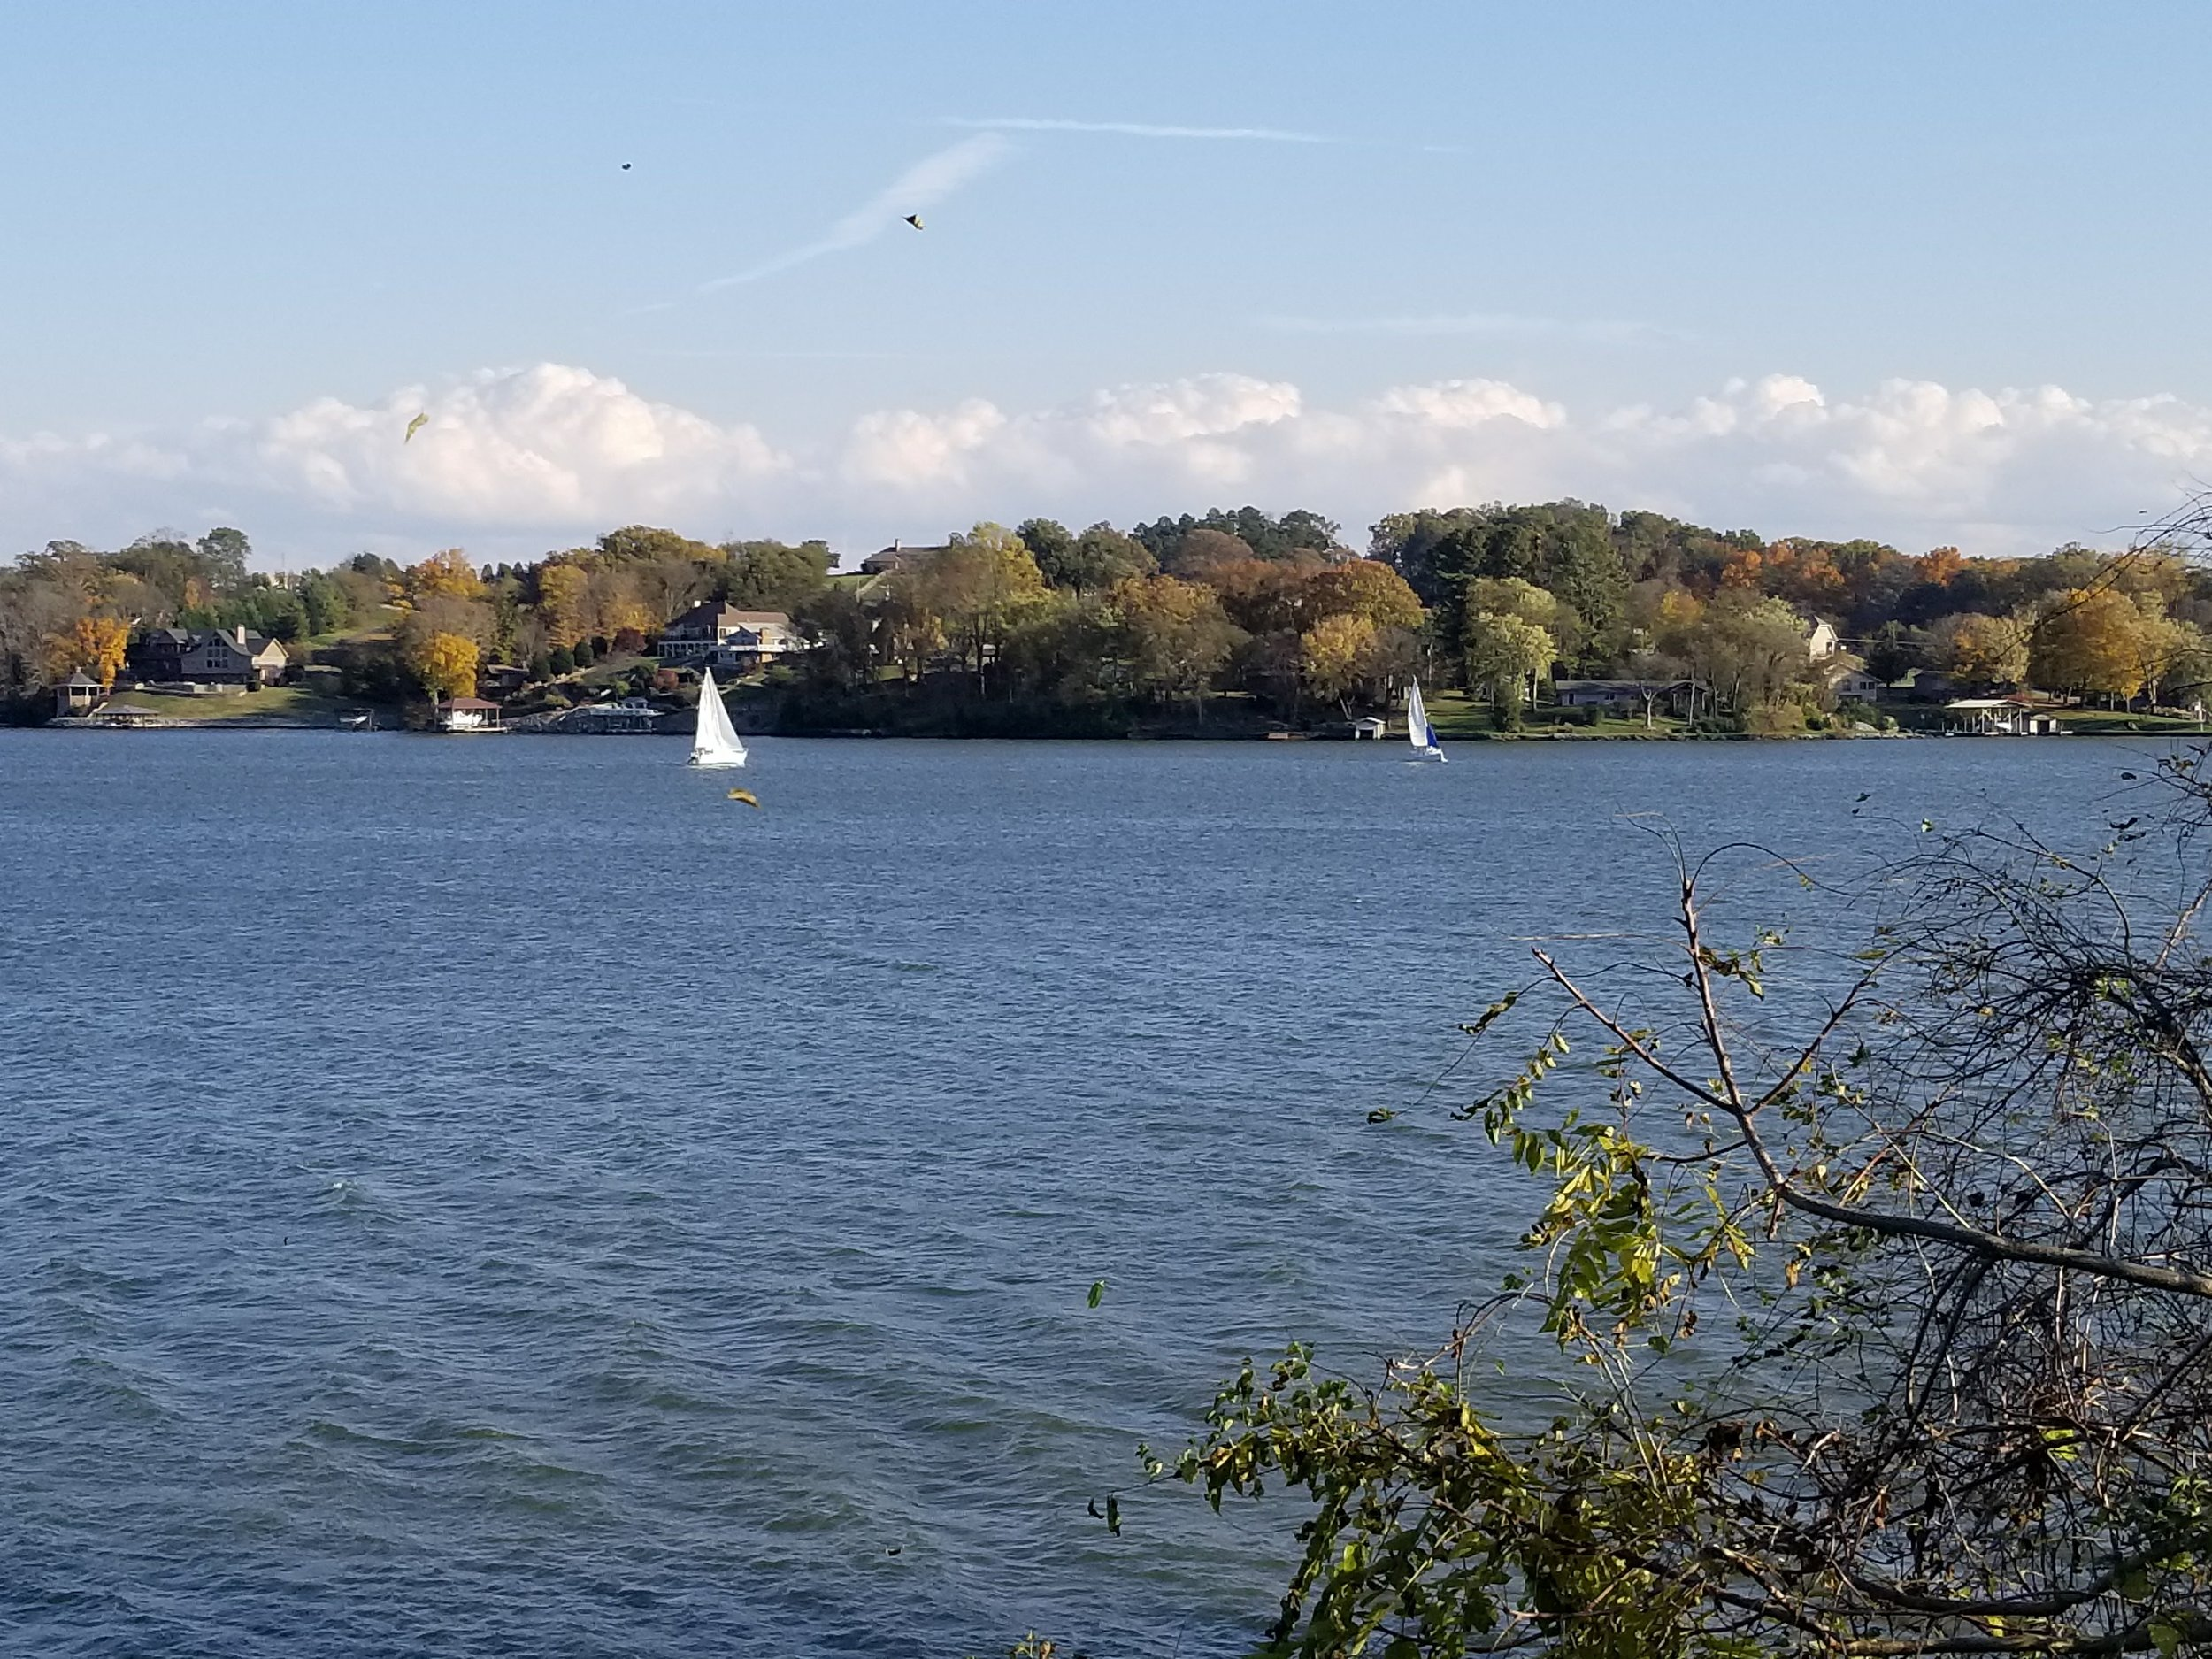 Sailboats take to the waters of Ft. Loudoun Lake on a warm November Day.